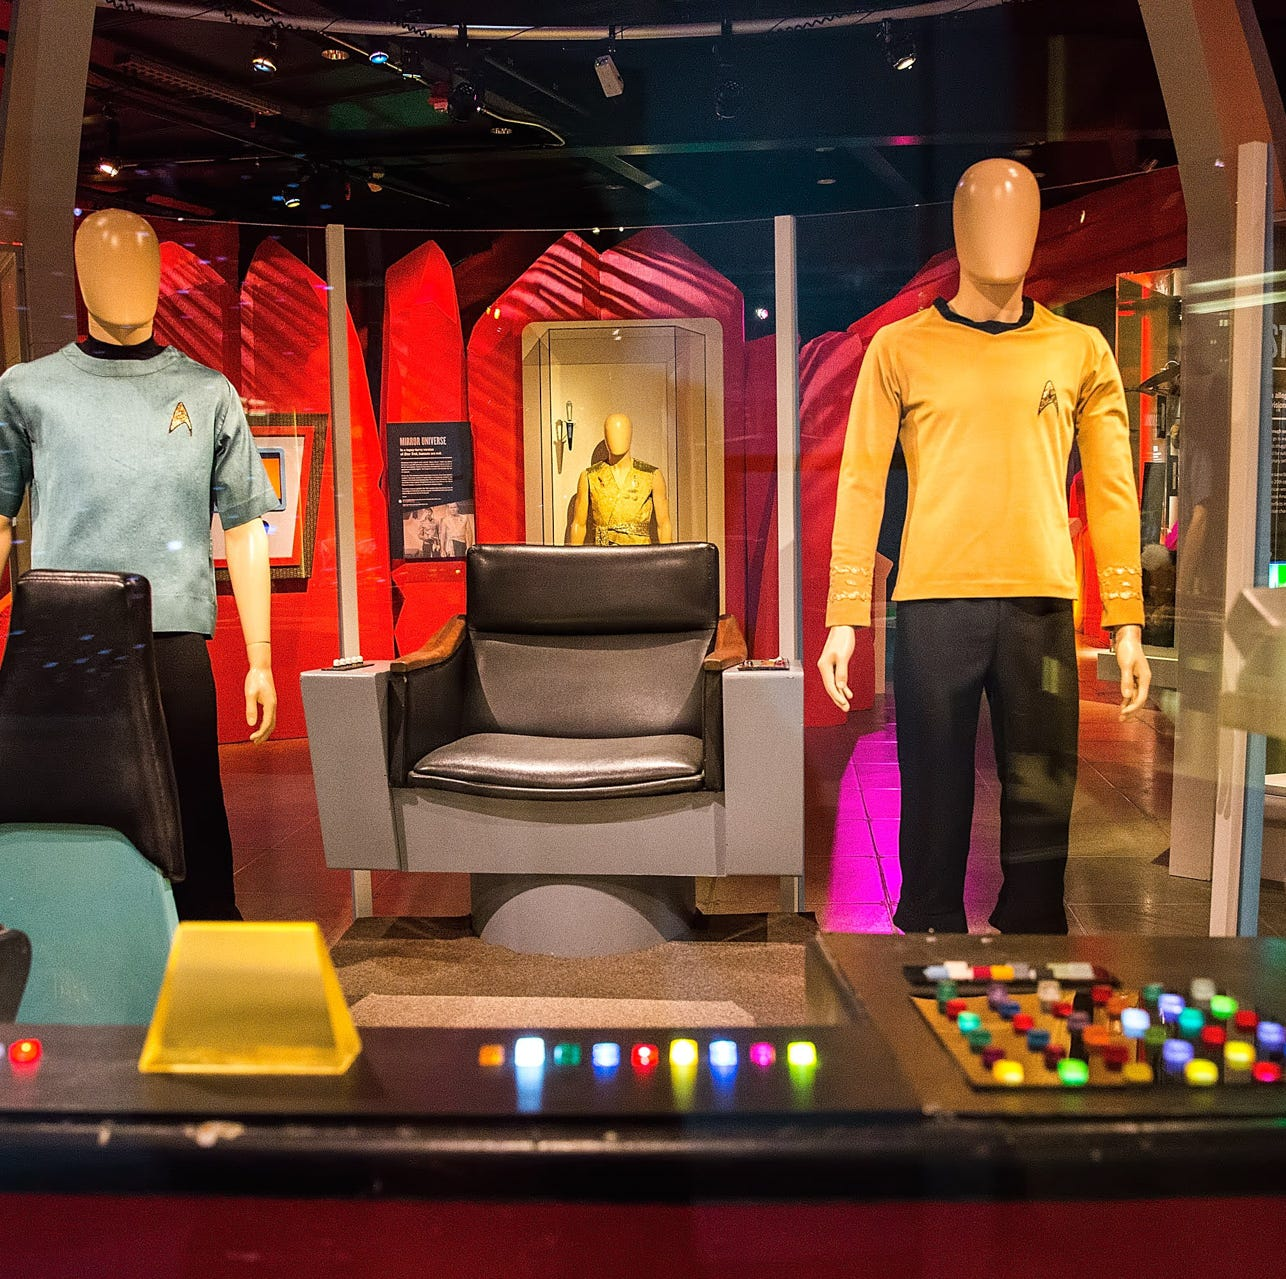 Massive 'Star Trek' exhibition with costumes, artifacts coming to Henry Ford Museum